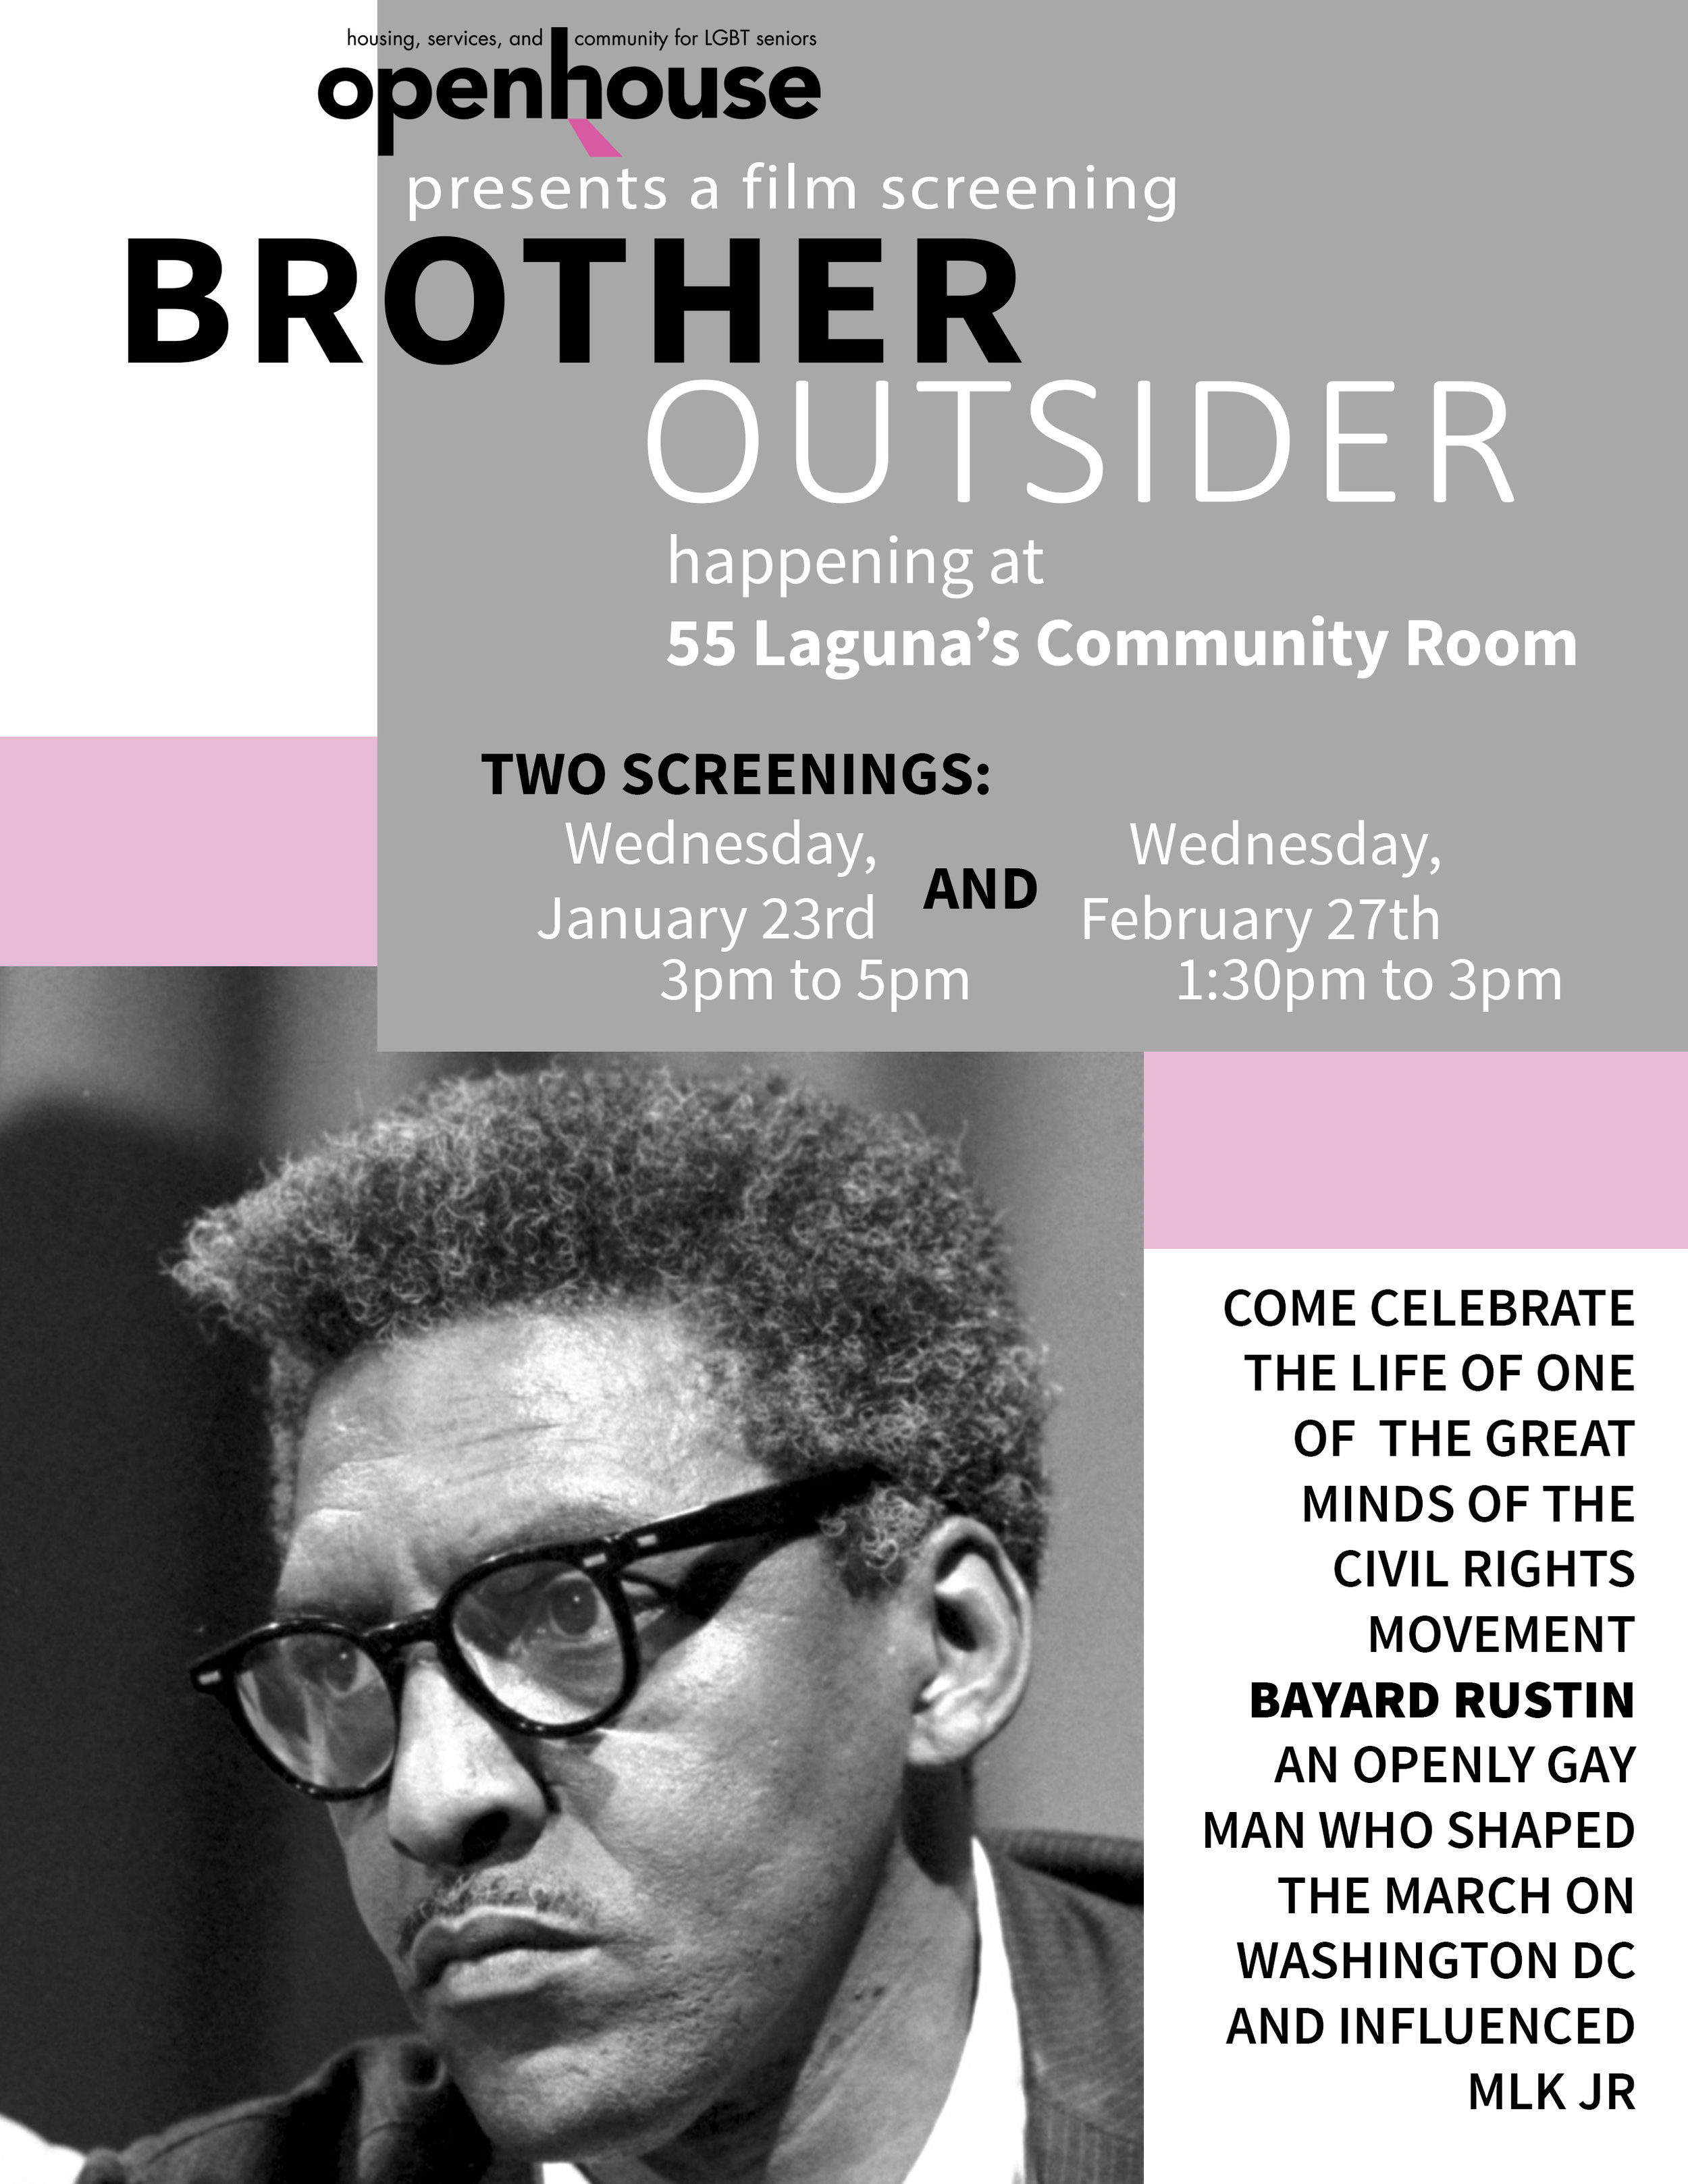 Print collateral I designed for the screening of Brother Outsider at Openhouse.